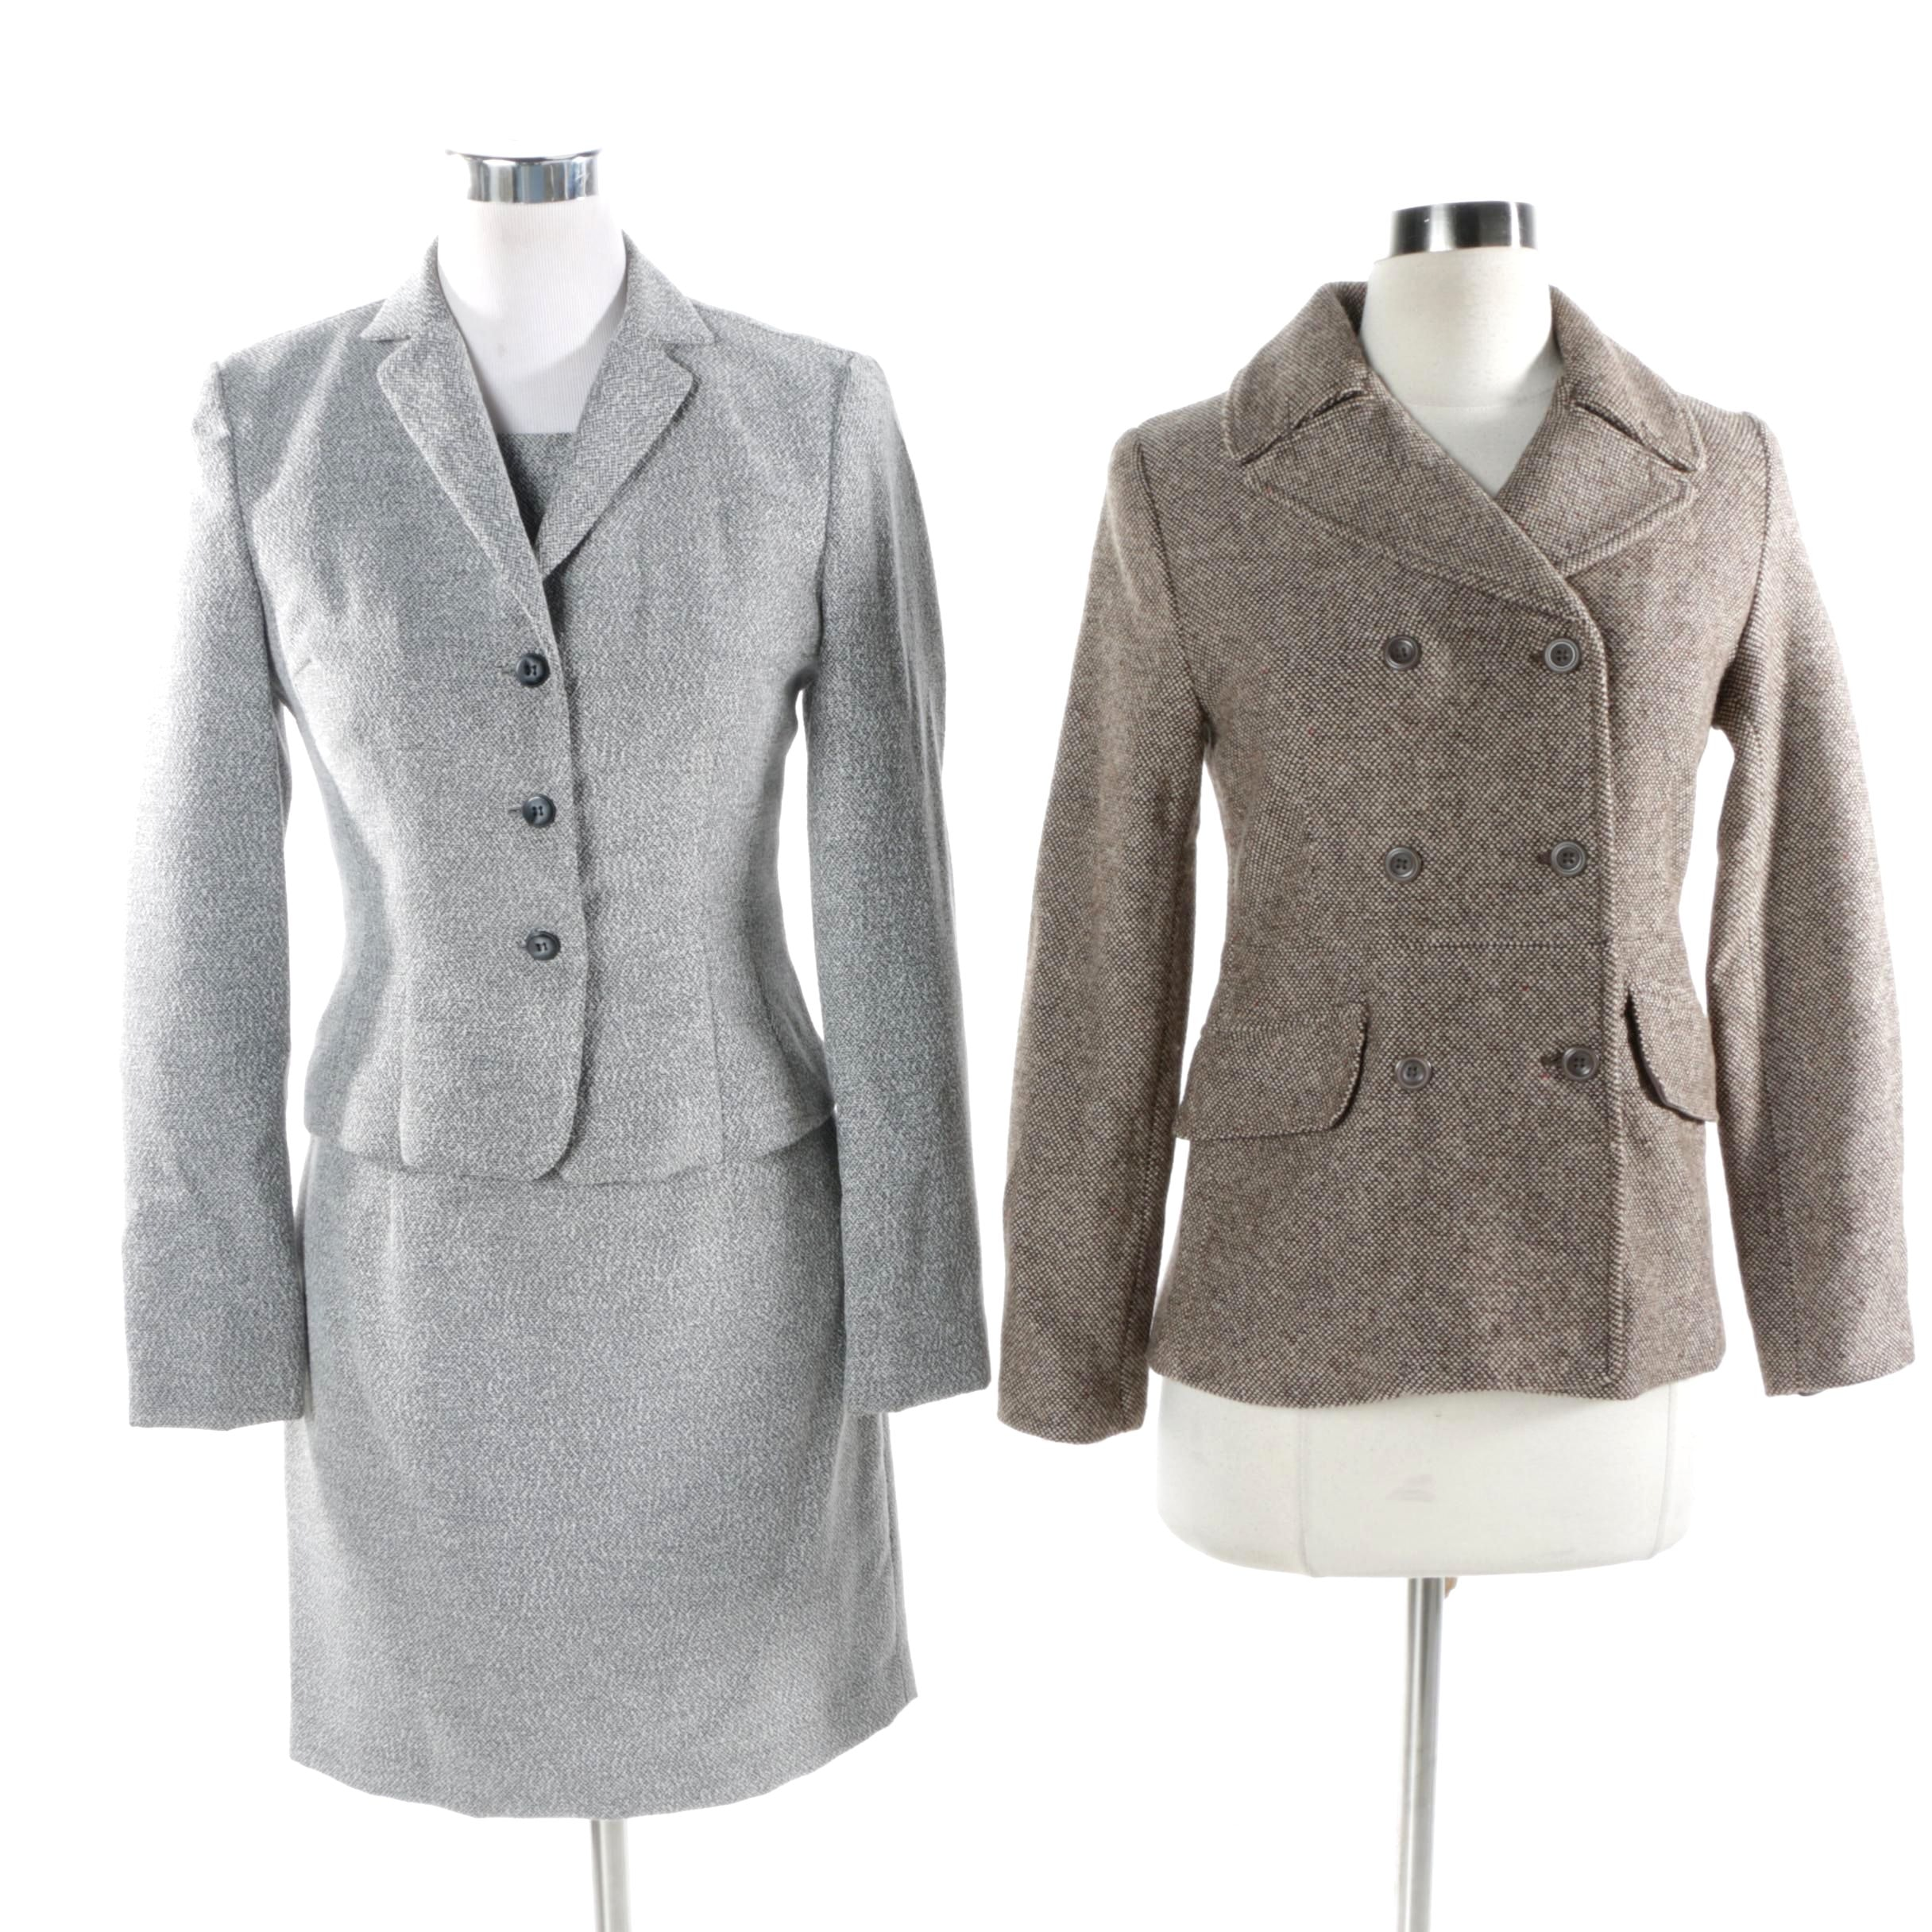 Women's Barami Tweed Dress Suit and Gap Tweed Wool Blend Jacket